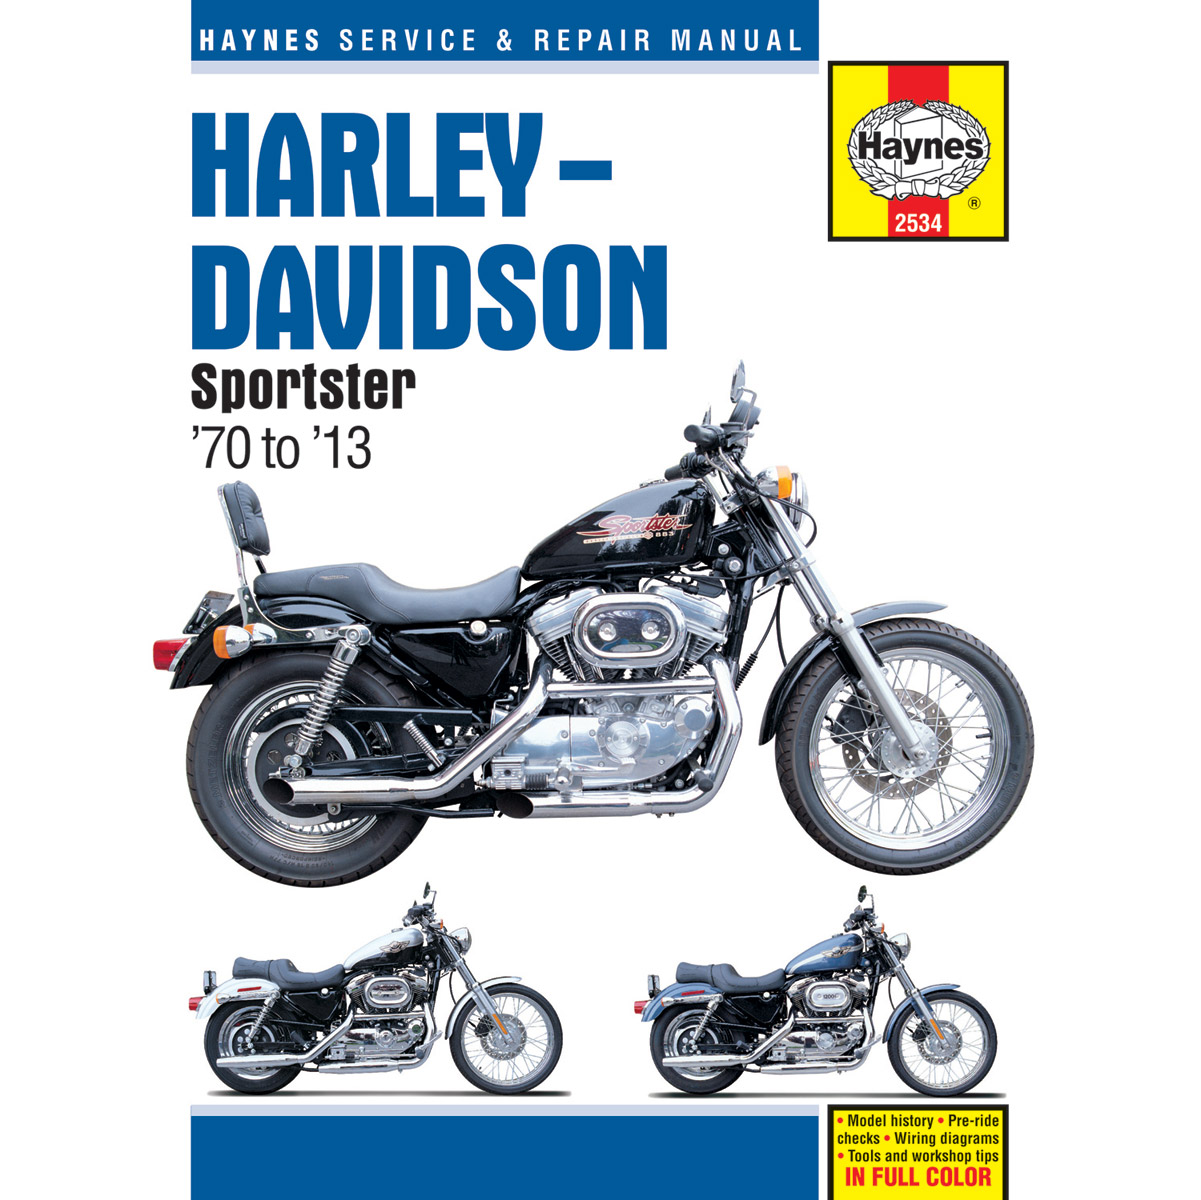 Haynes Sportster Manual - 2534 | JPCycles.com on